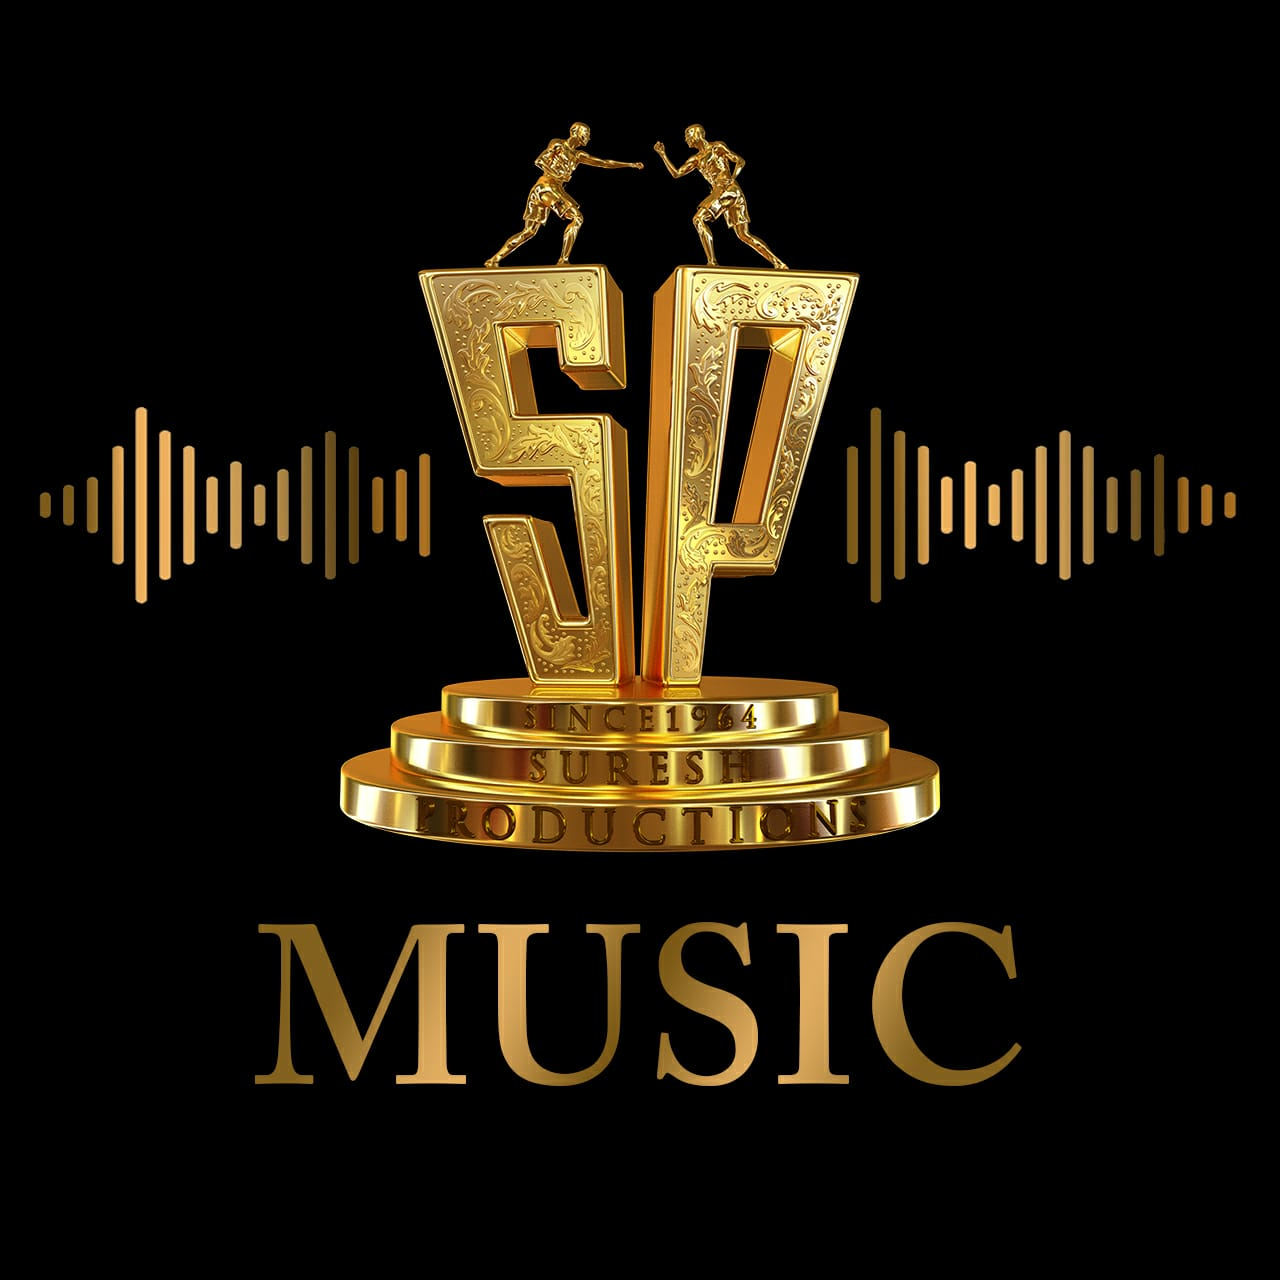 Suresh Productions Forays Into Music Industry With SP Music